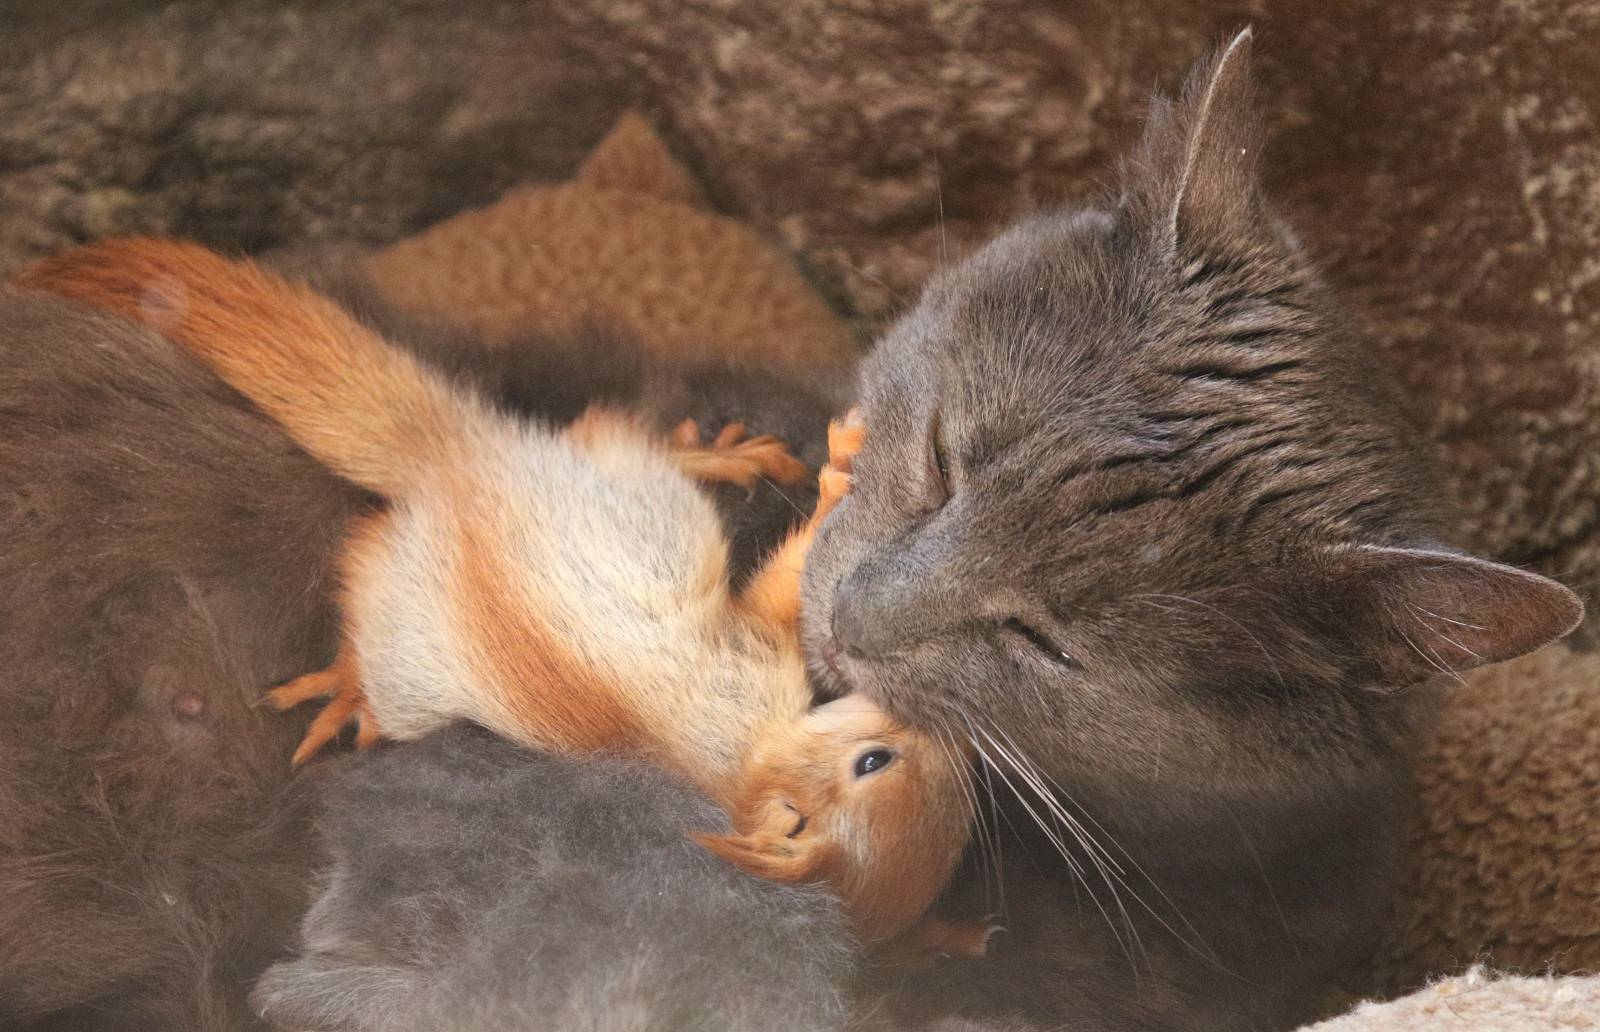 Pusha the cat plays with a baby squirrel in Bakhchisaray